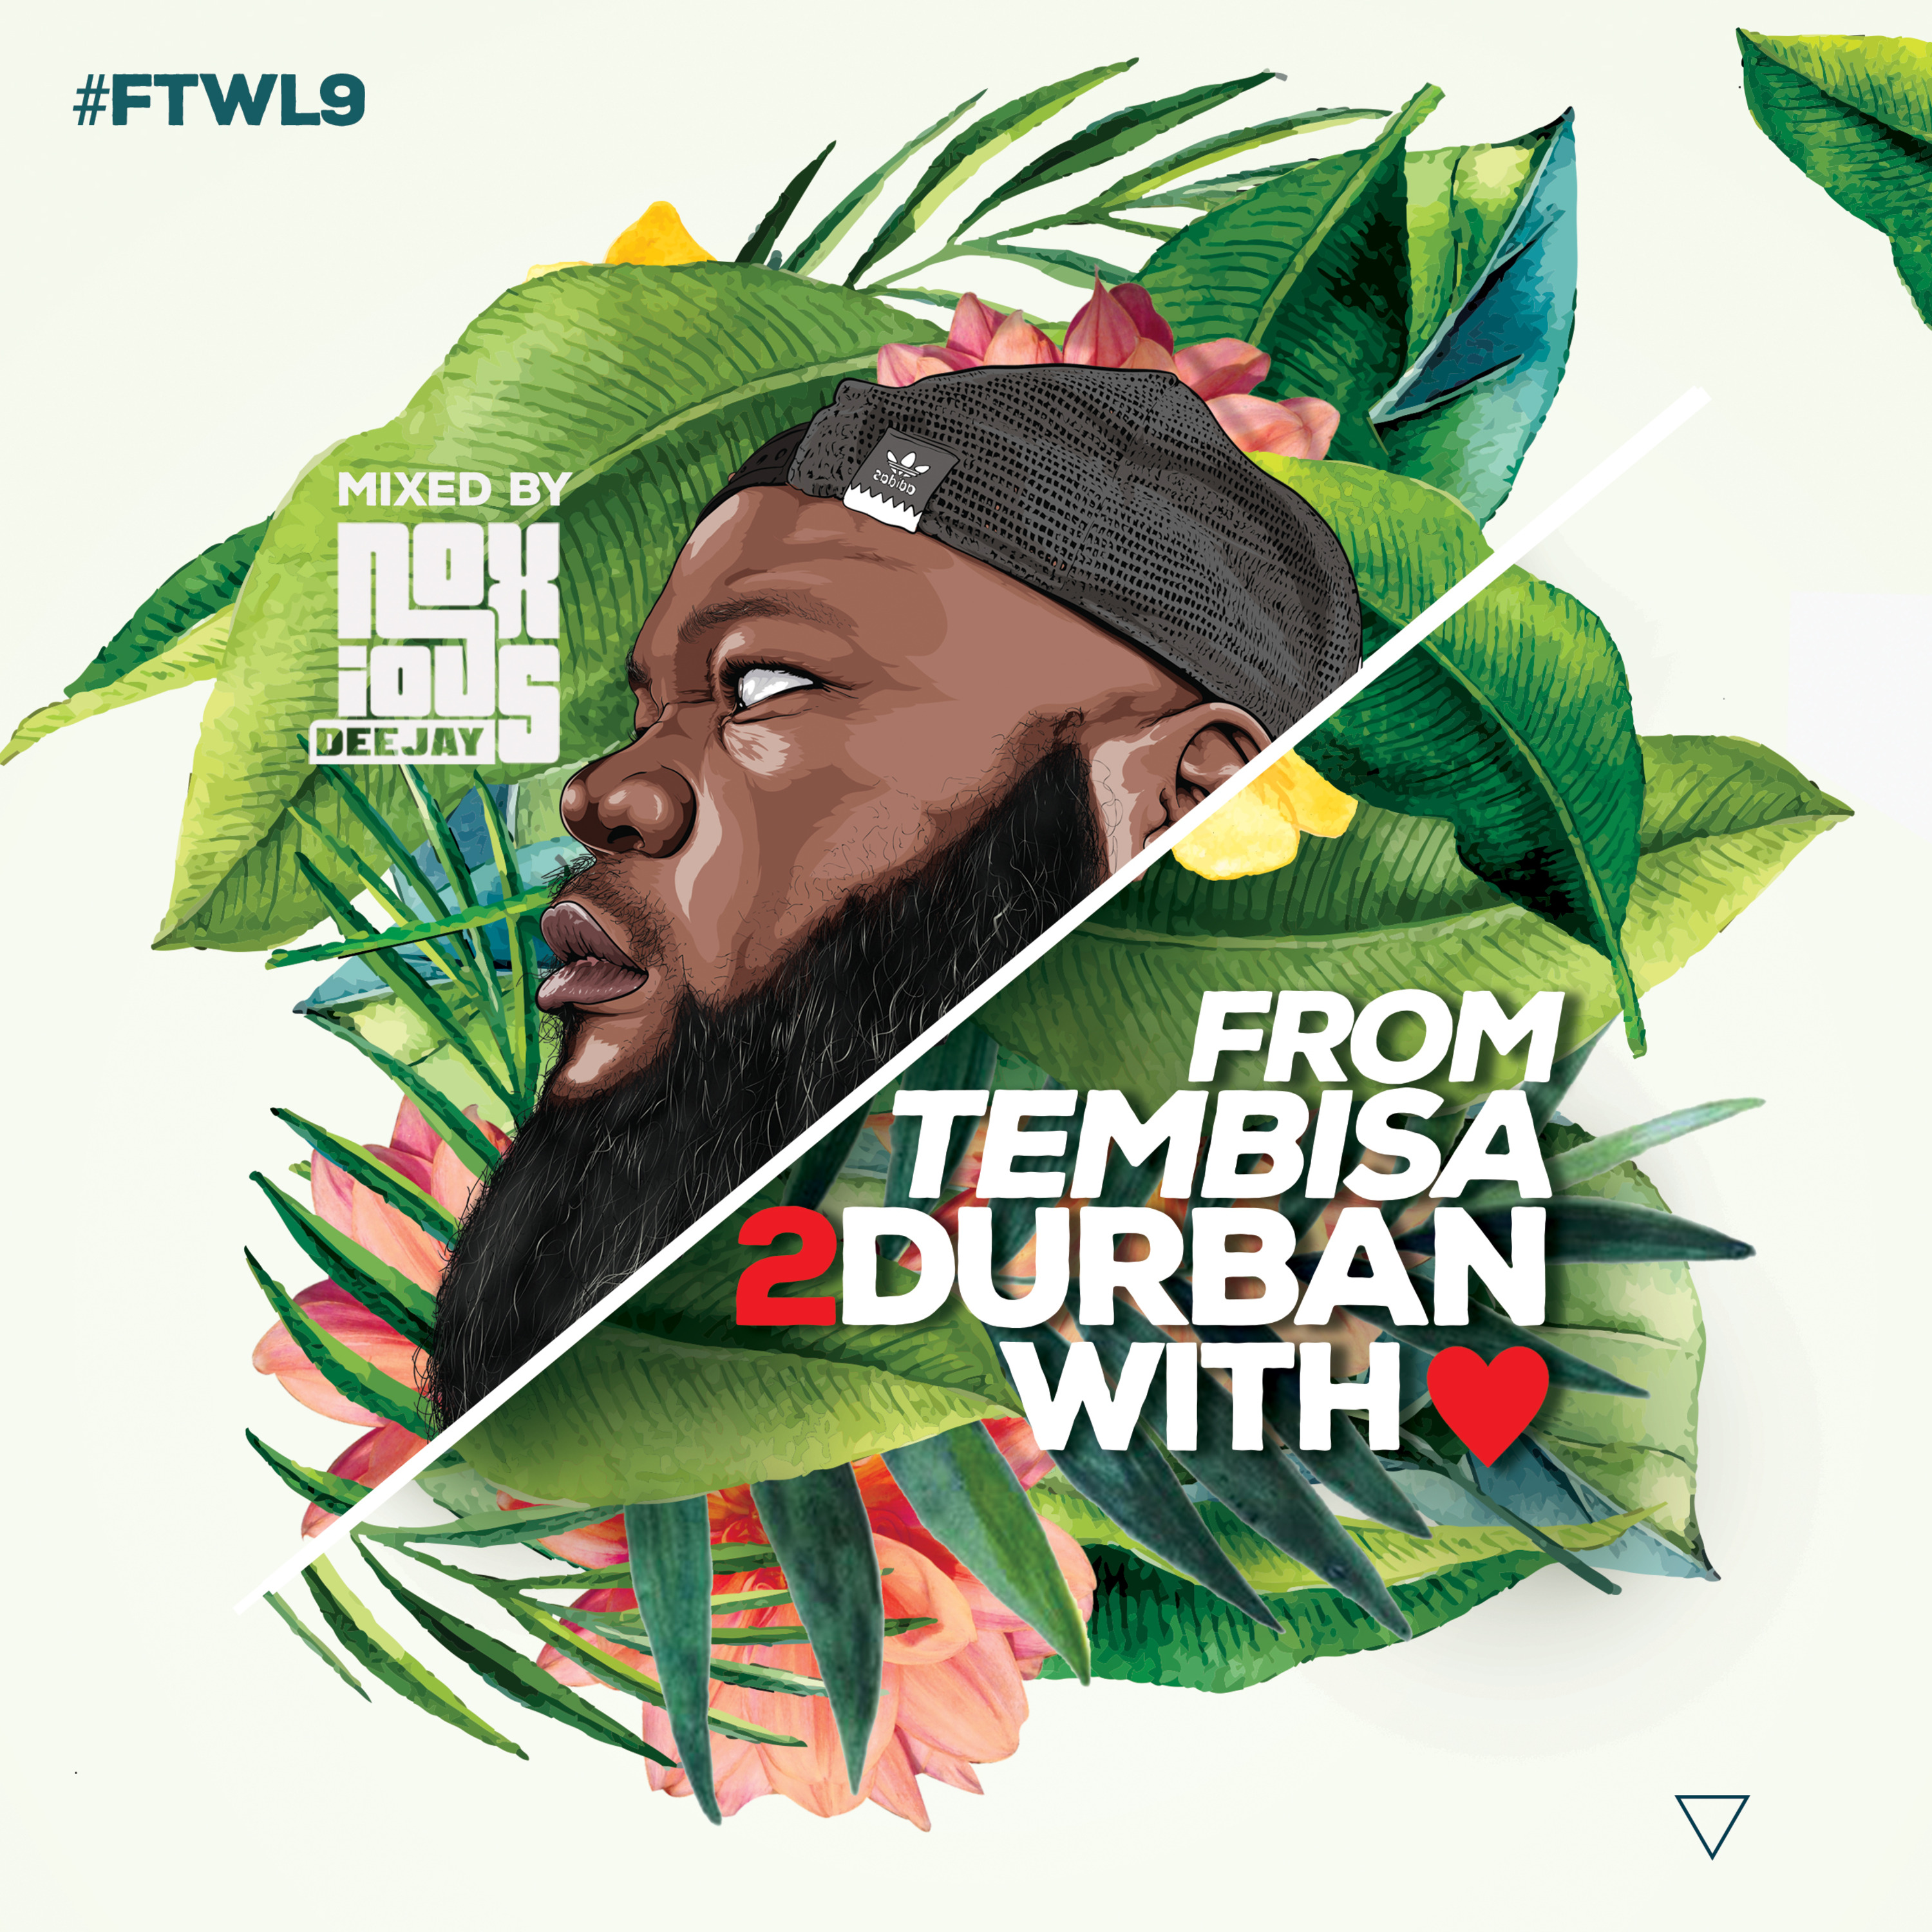 From Tembisa 2 Durban With Love [FTWL9] Mixed By Noxious DJ